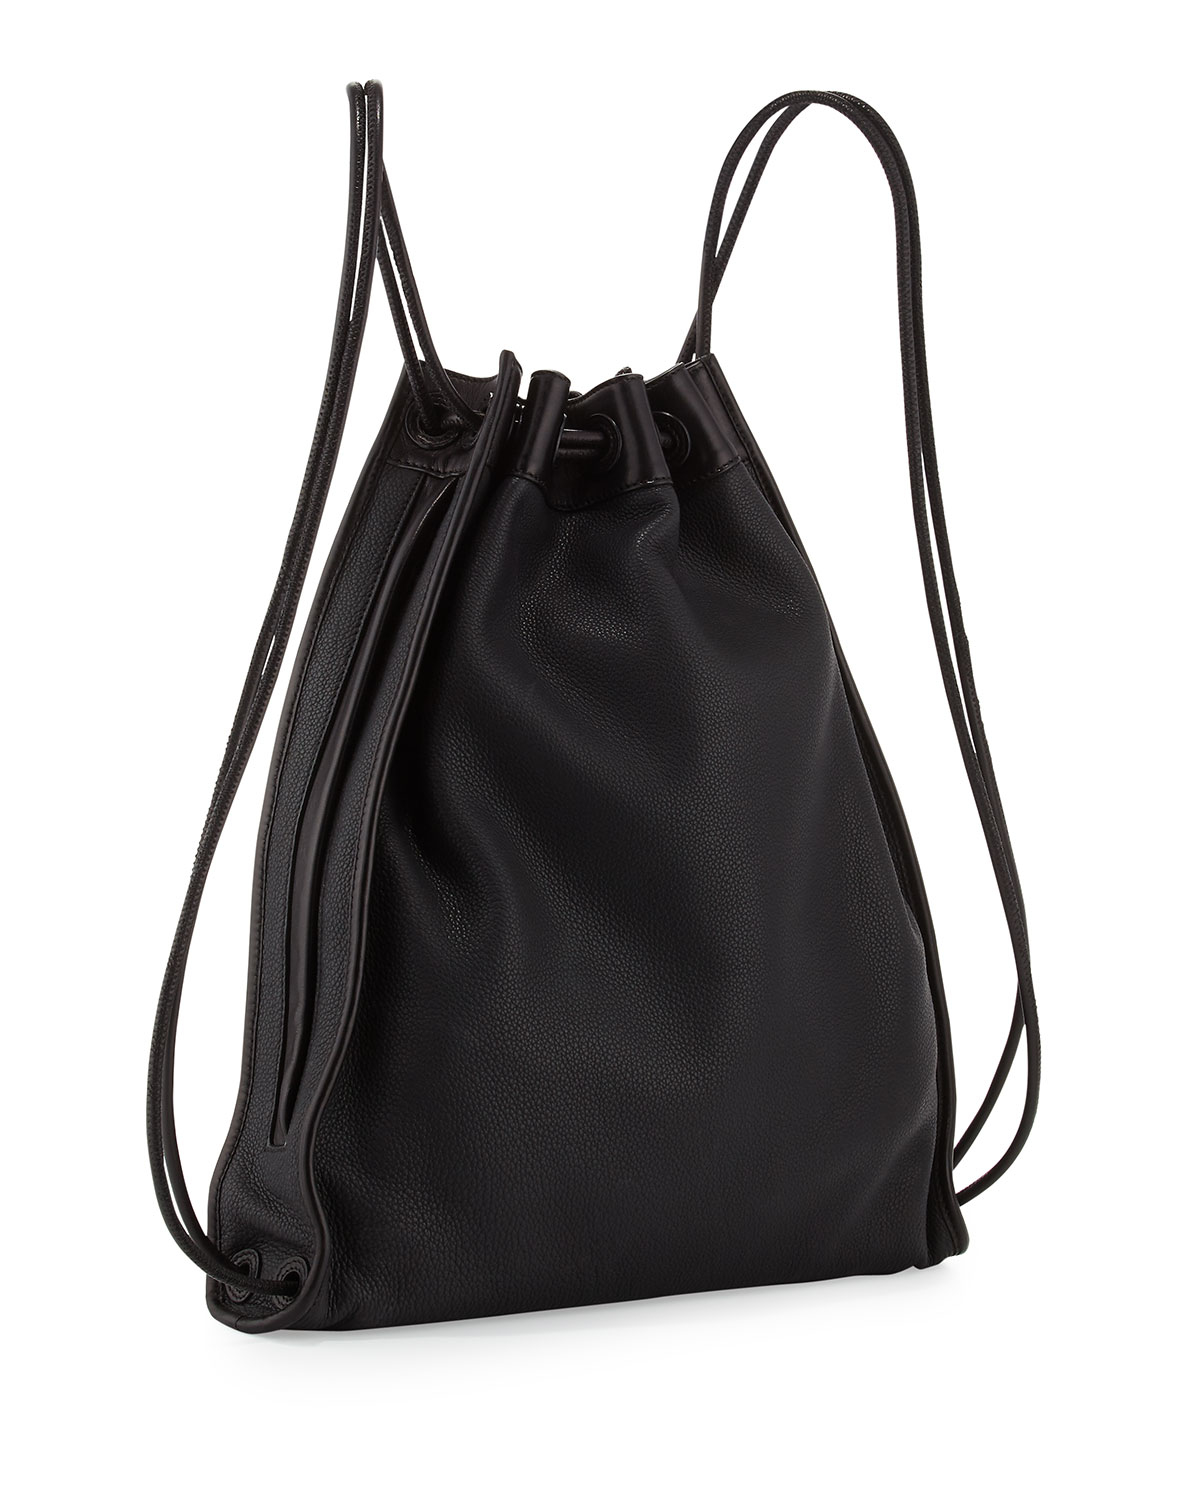 4e4f93c97cd0 Gallery. Previously sold at  Bergdorf Goodman · Women s Gym Bags ...